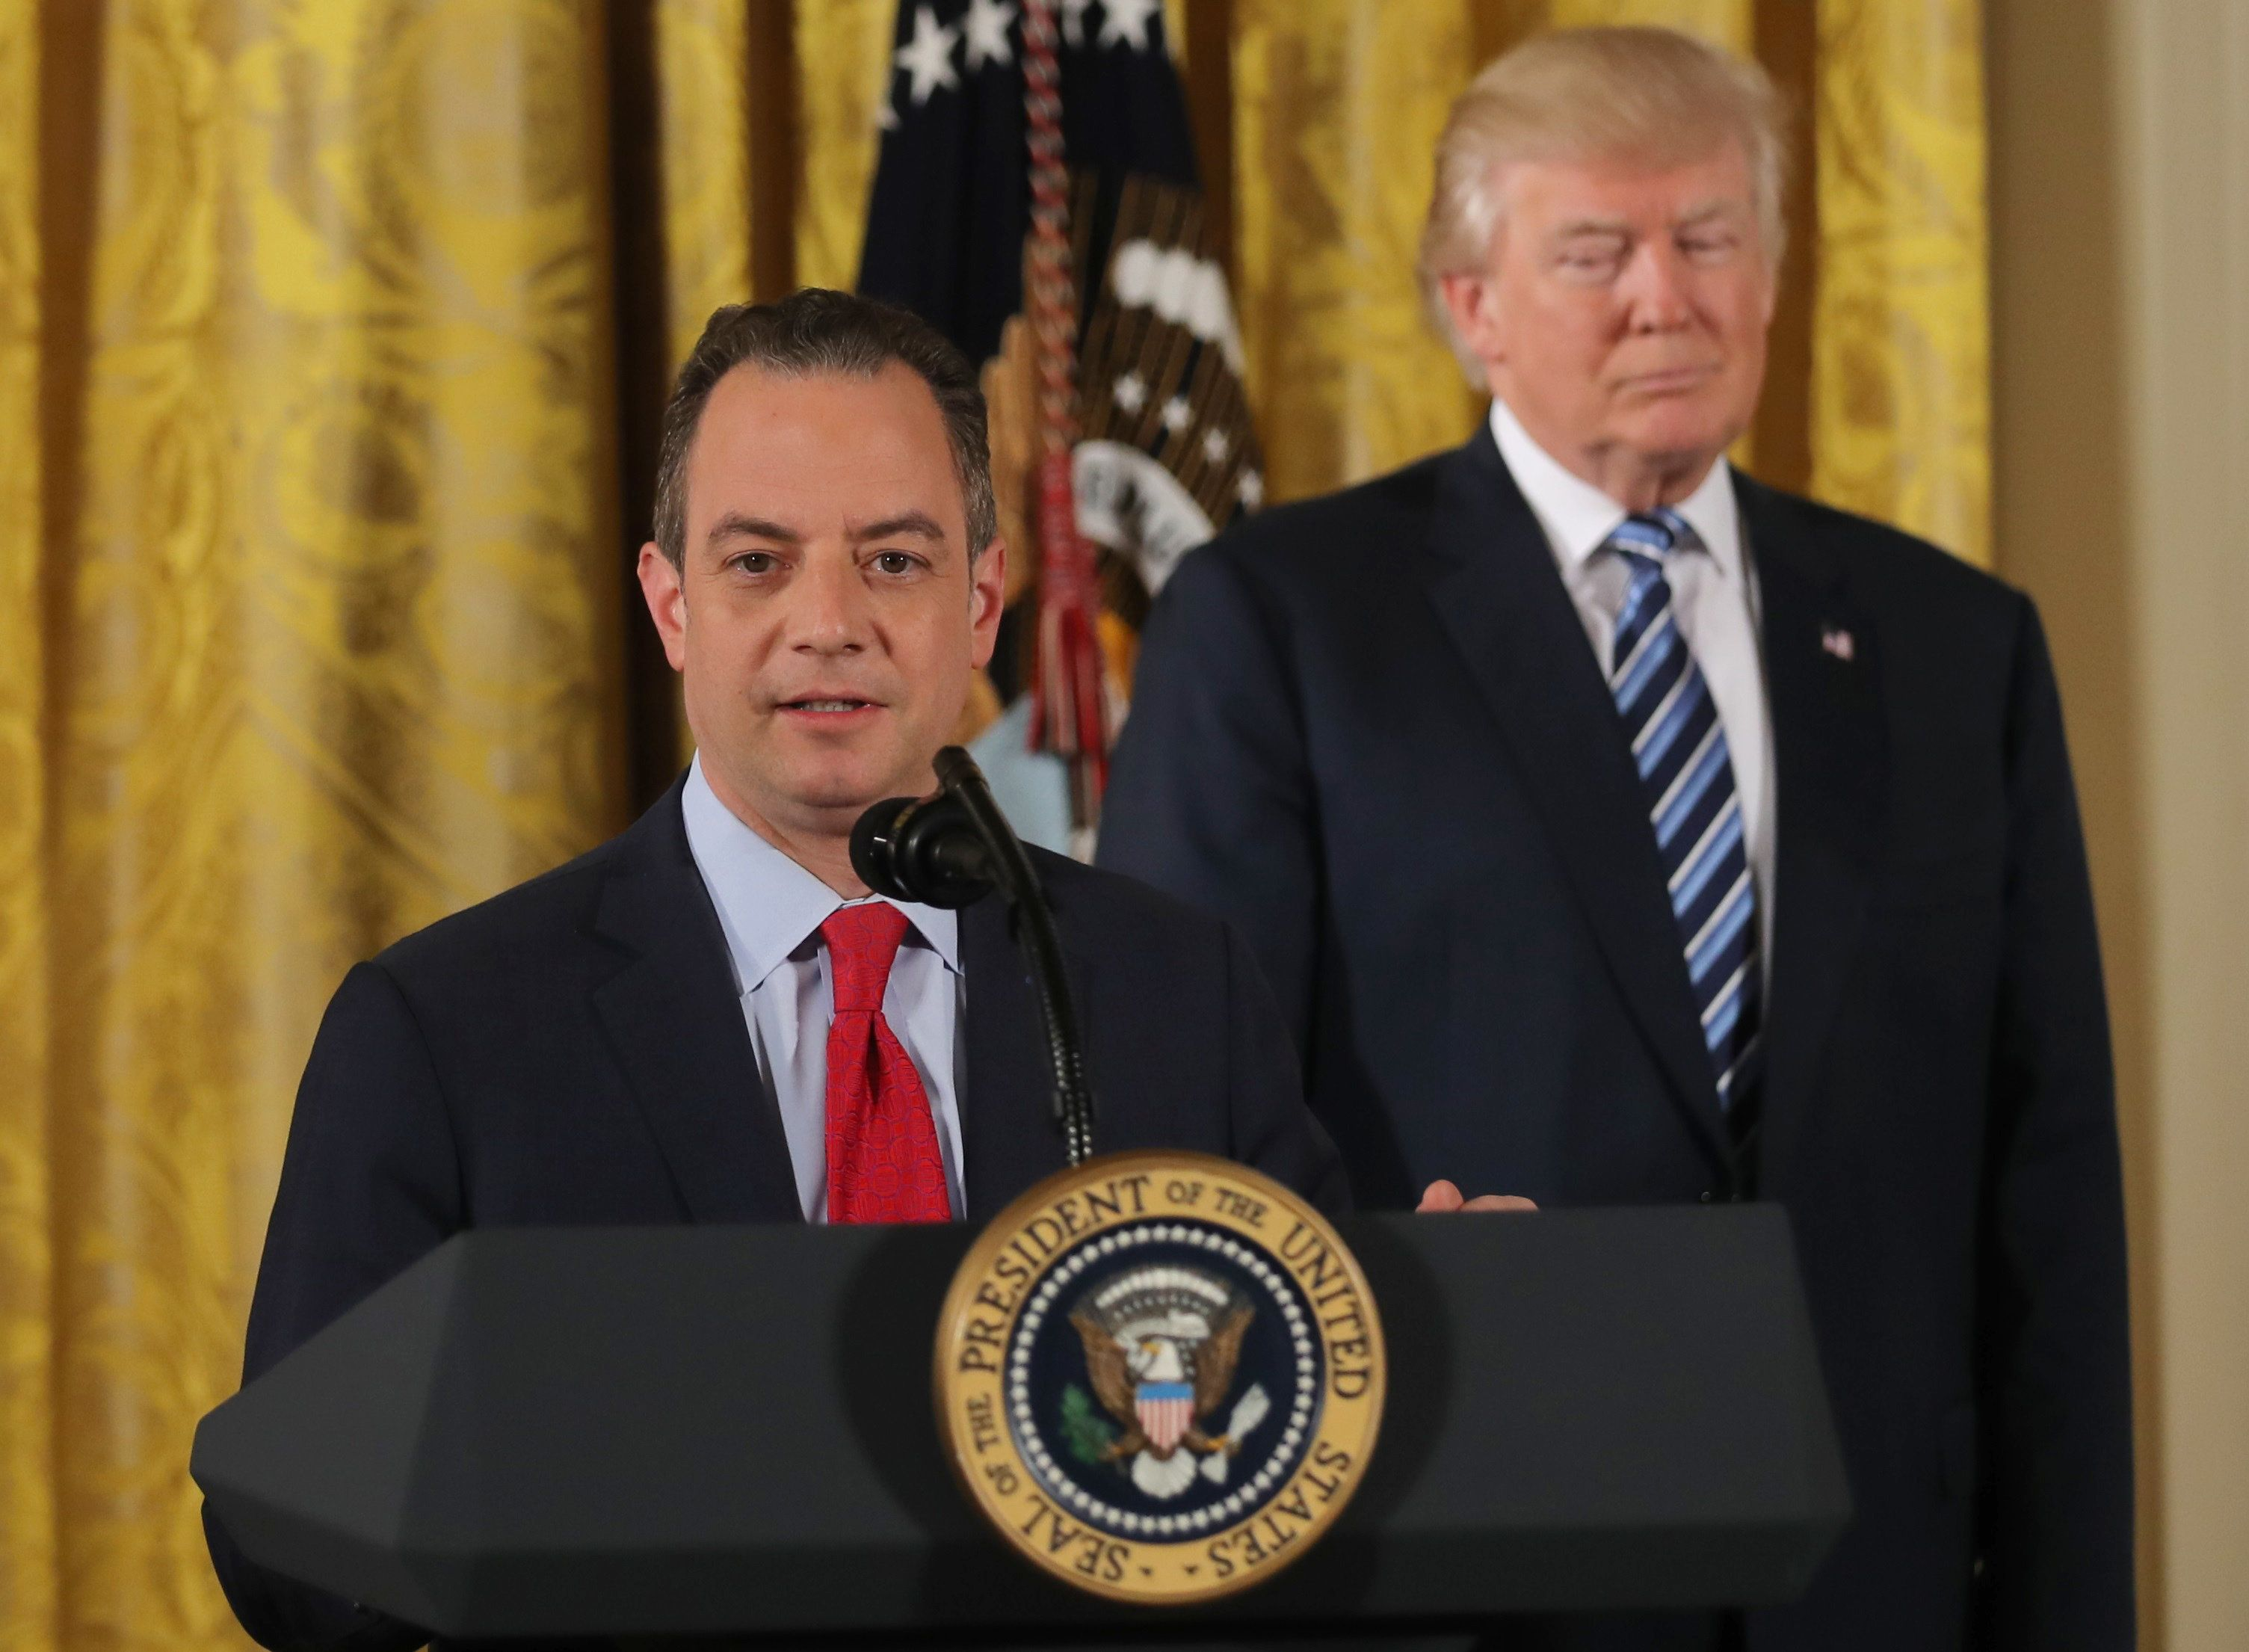 U.S. President Donald Trump stands behinds Chief of Staff Reince Priebus after a swearing-in ceremony for senior staff at the White House in Washington, DC January 22, 2017. REUTERS/Carlos Barria